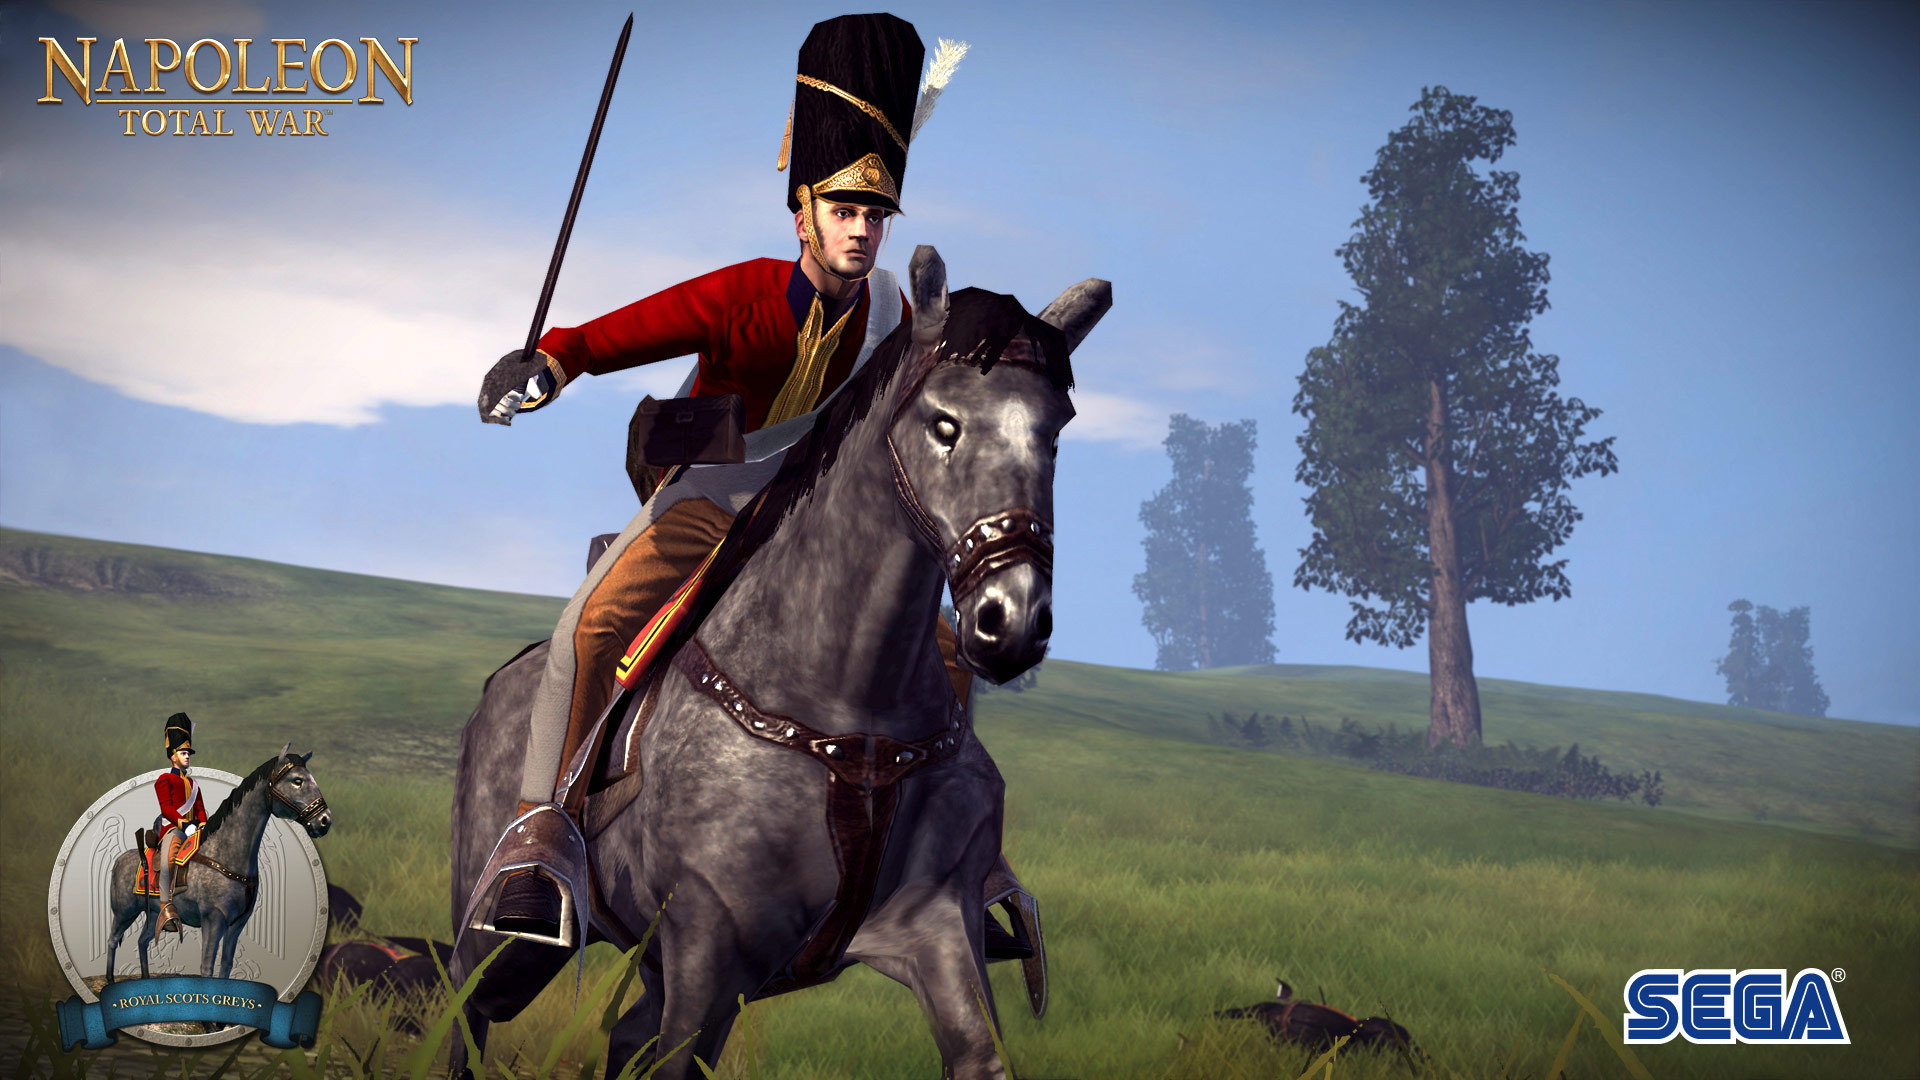 napoleon total war download size